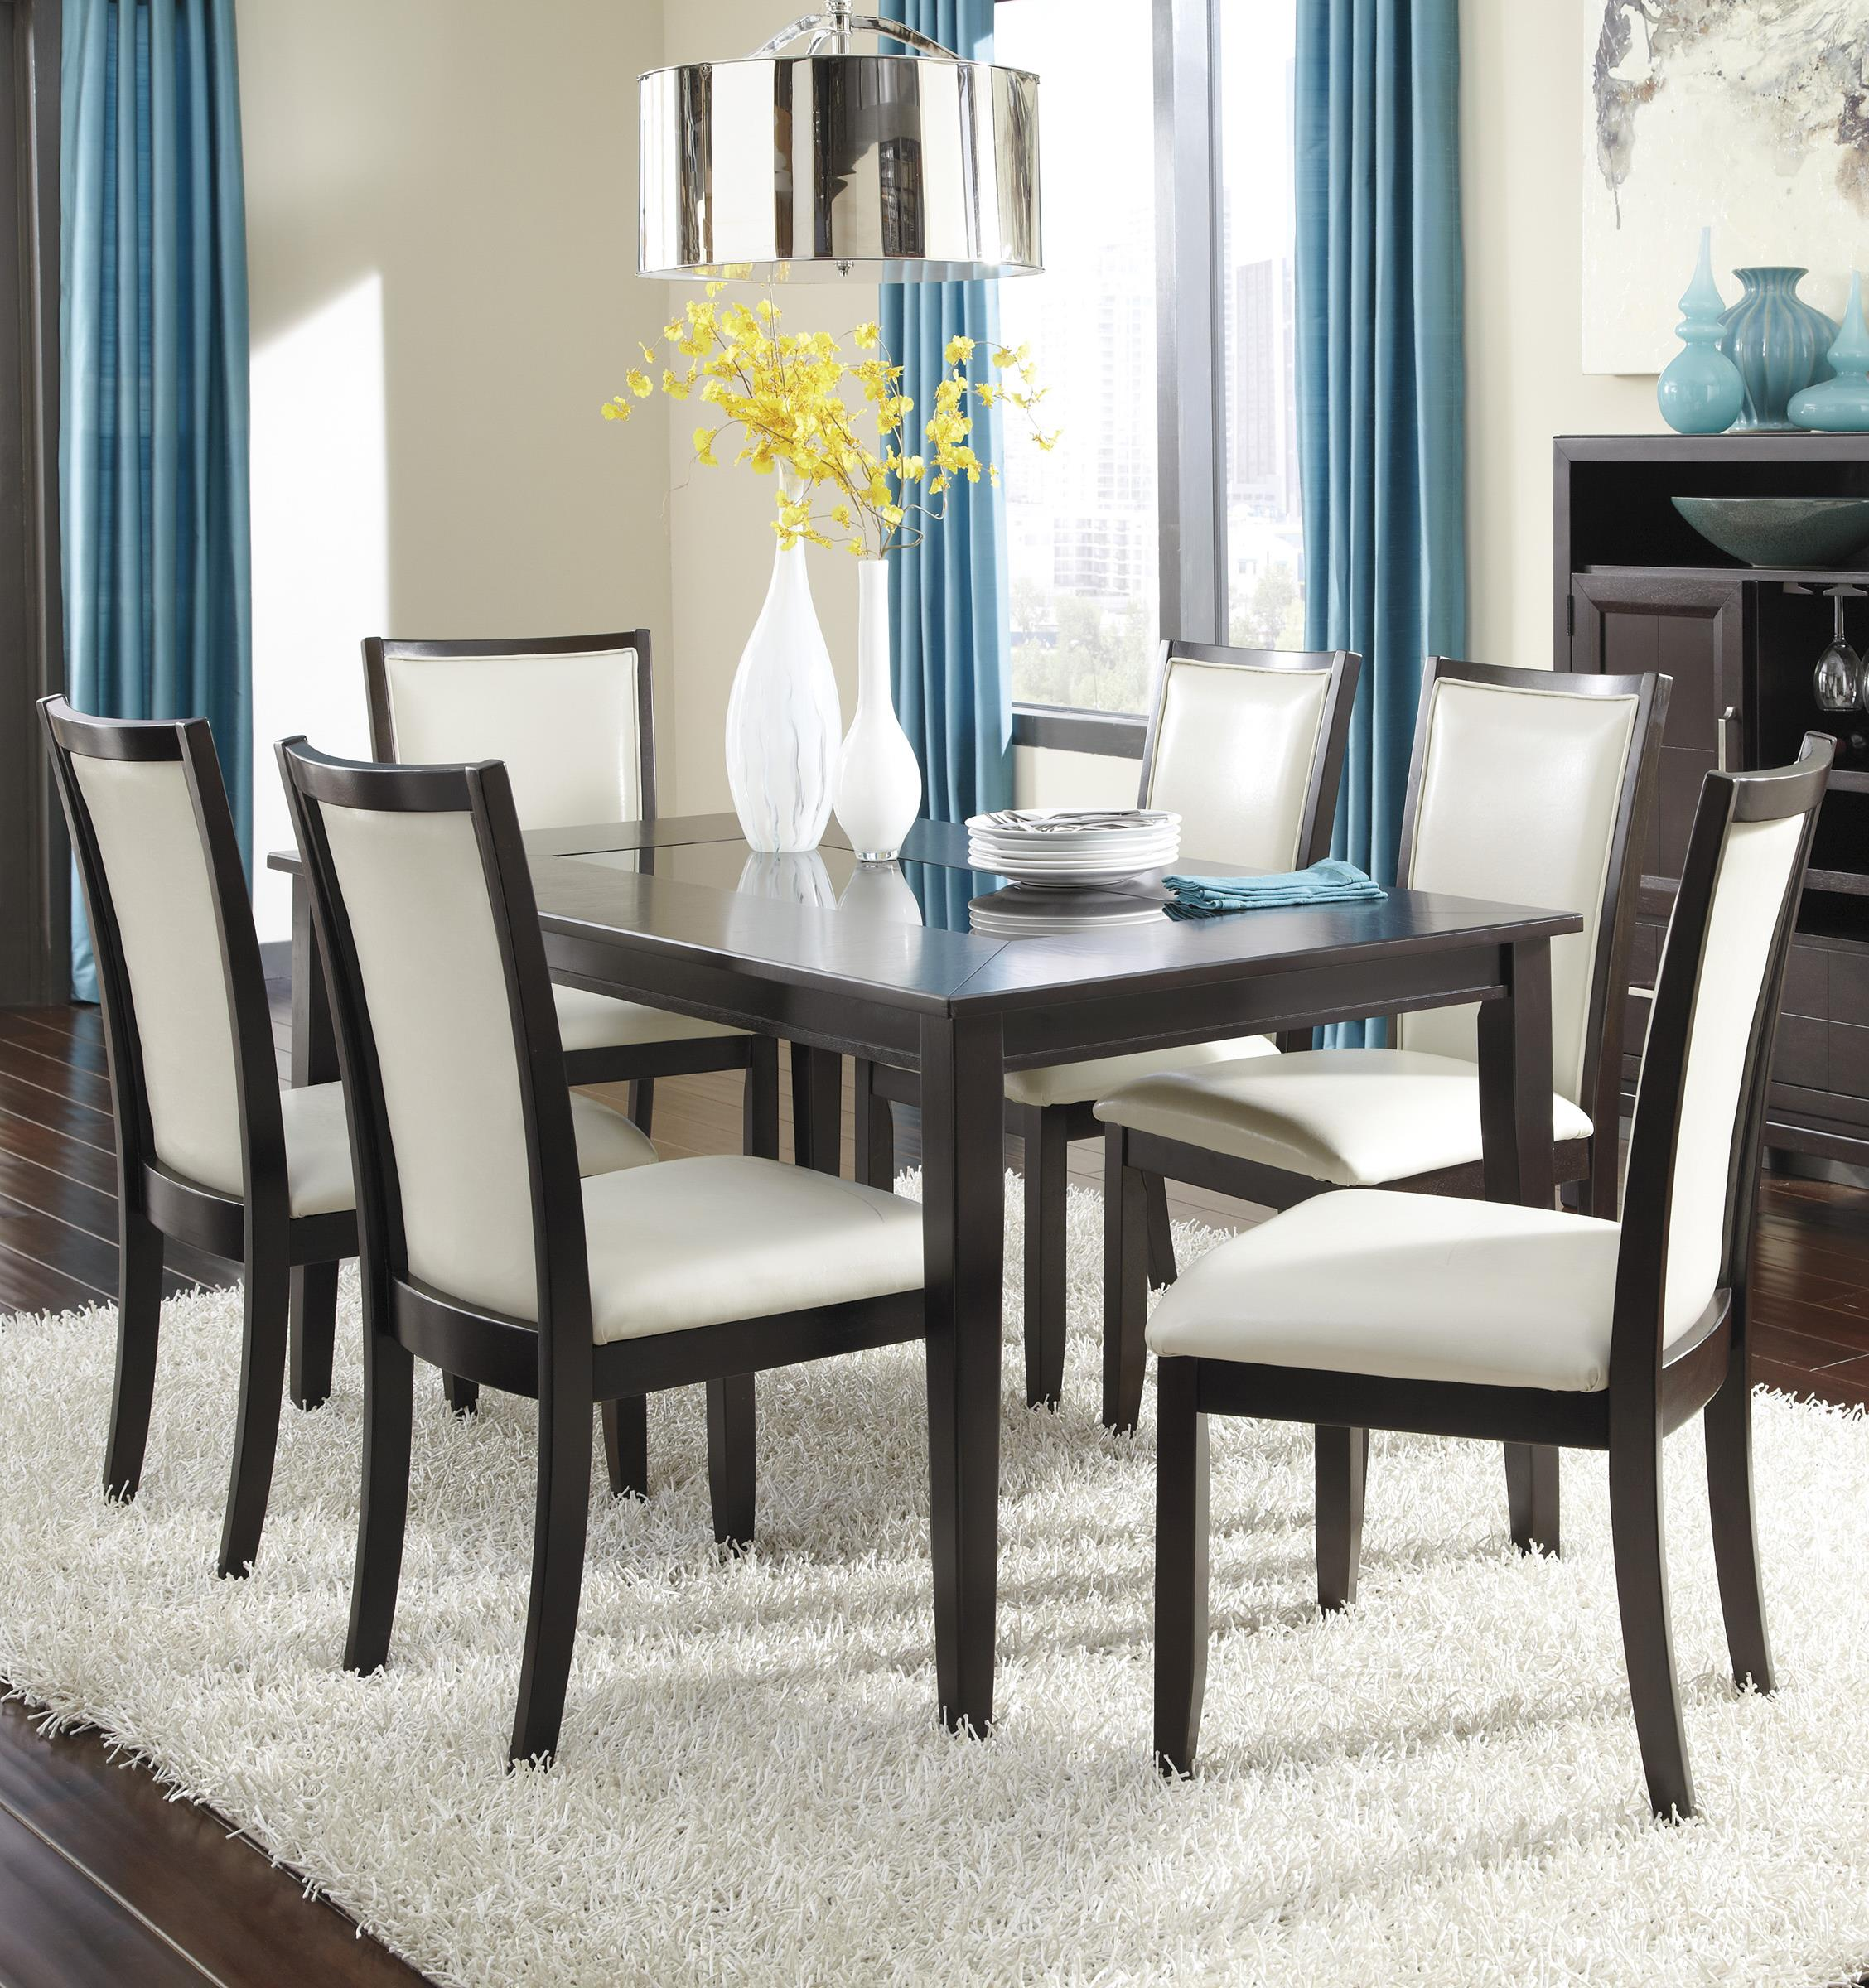 Ashley Furniture Trishelle 7-Piece Rectangular Dining Table Set - Item Number: D550-25+6x03